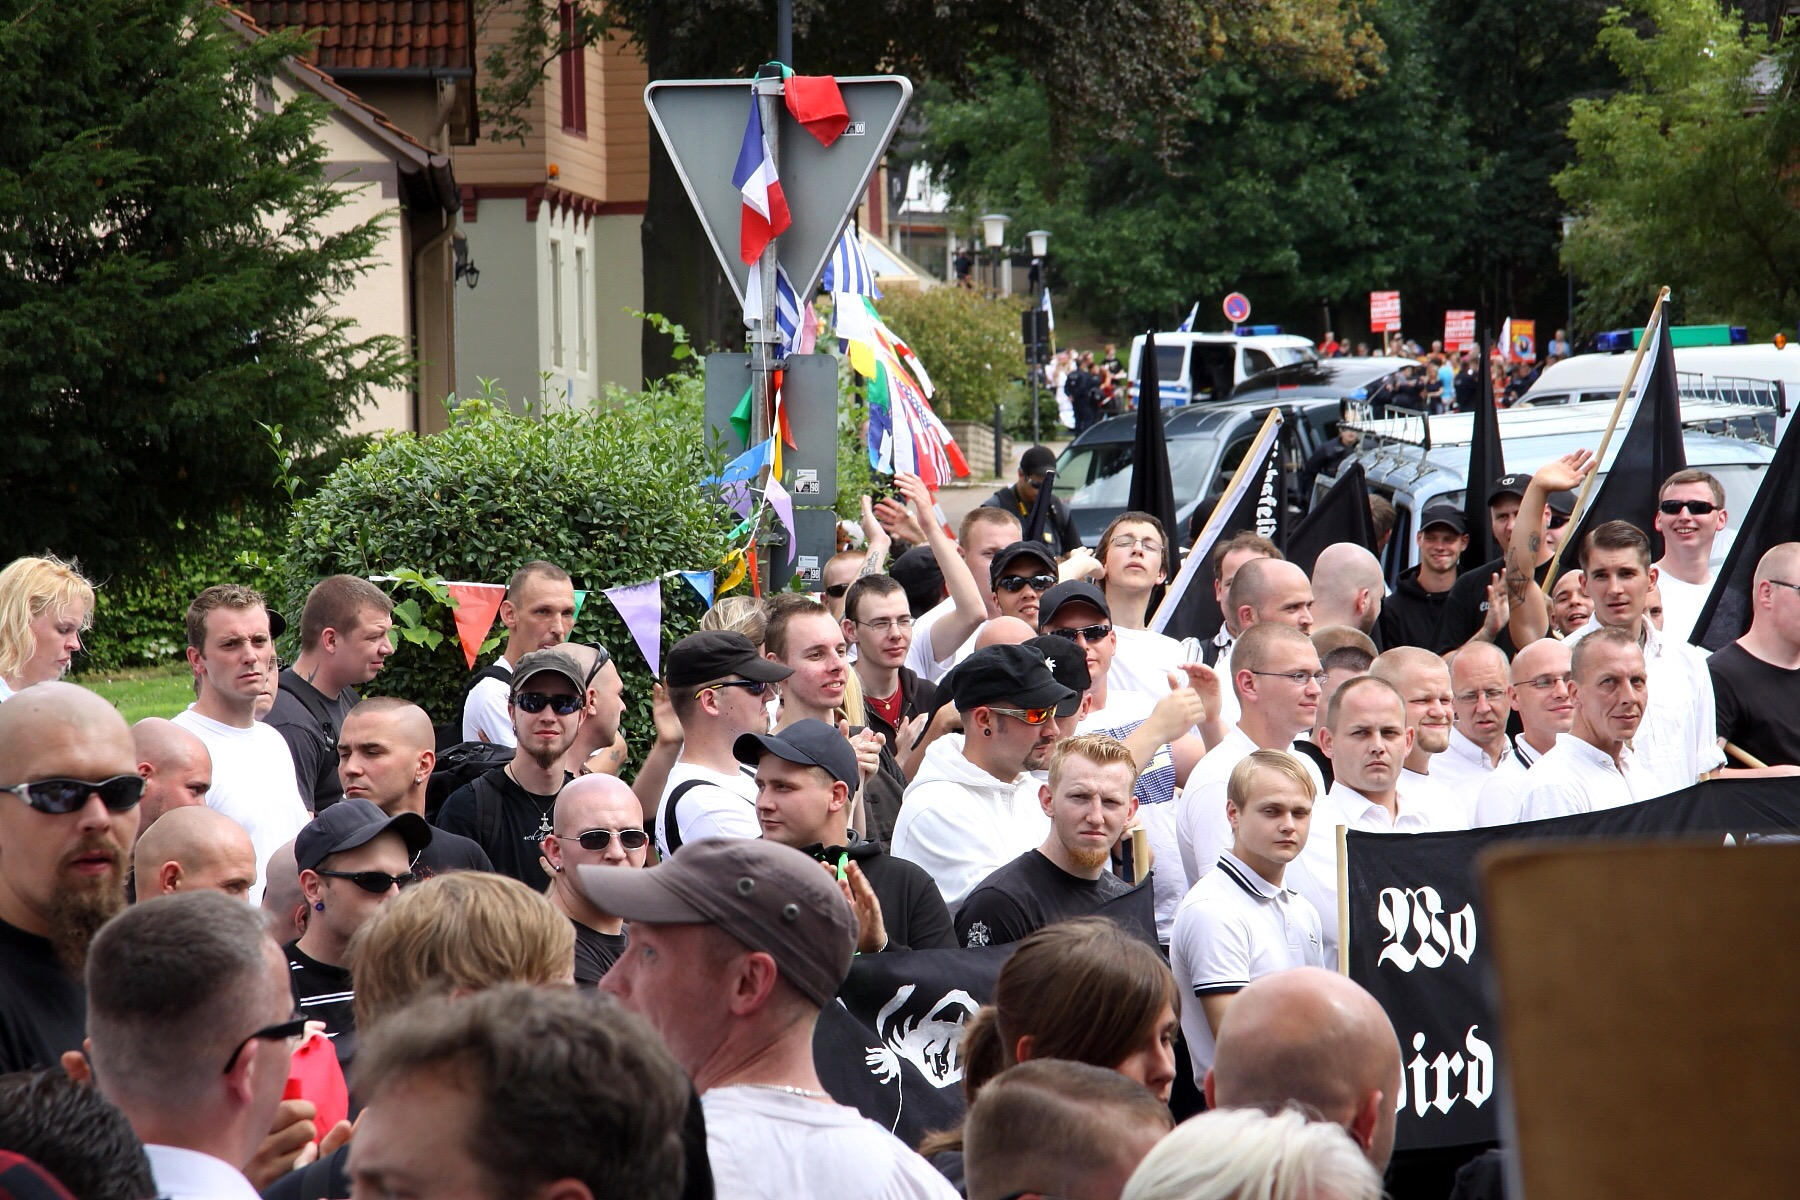 Right-winged extremist at a rally. Yes, most of the germans don't like them, too. (Picture by Michaela, CC -BY-NC-ND 2.0)